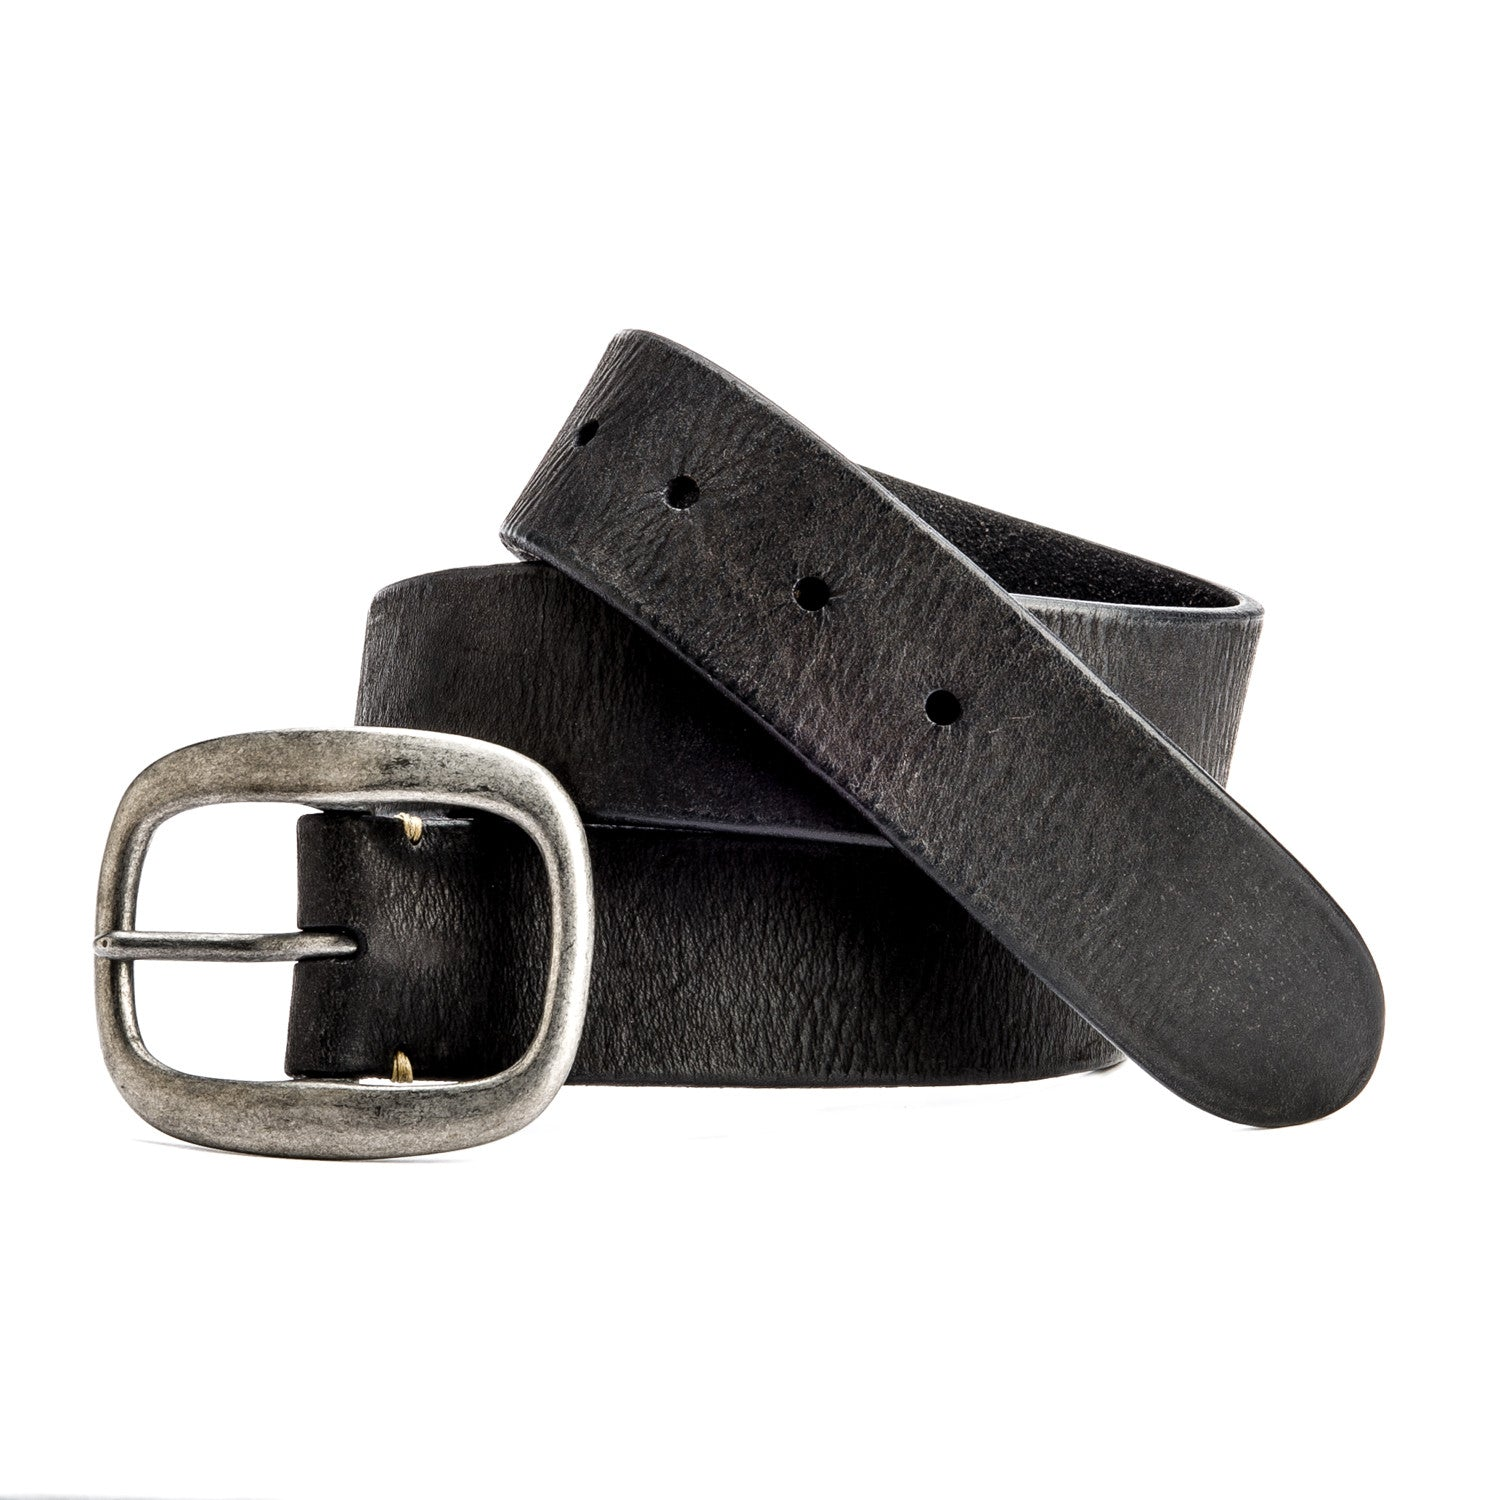 Nero Belt with Oval Buckle - Peter Nappi - 2